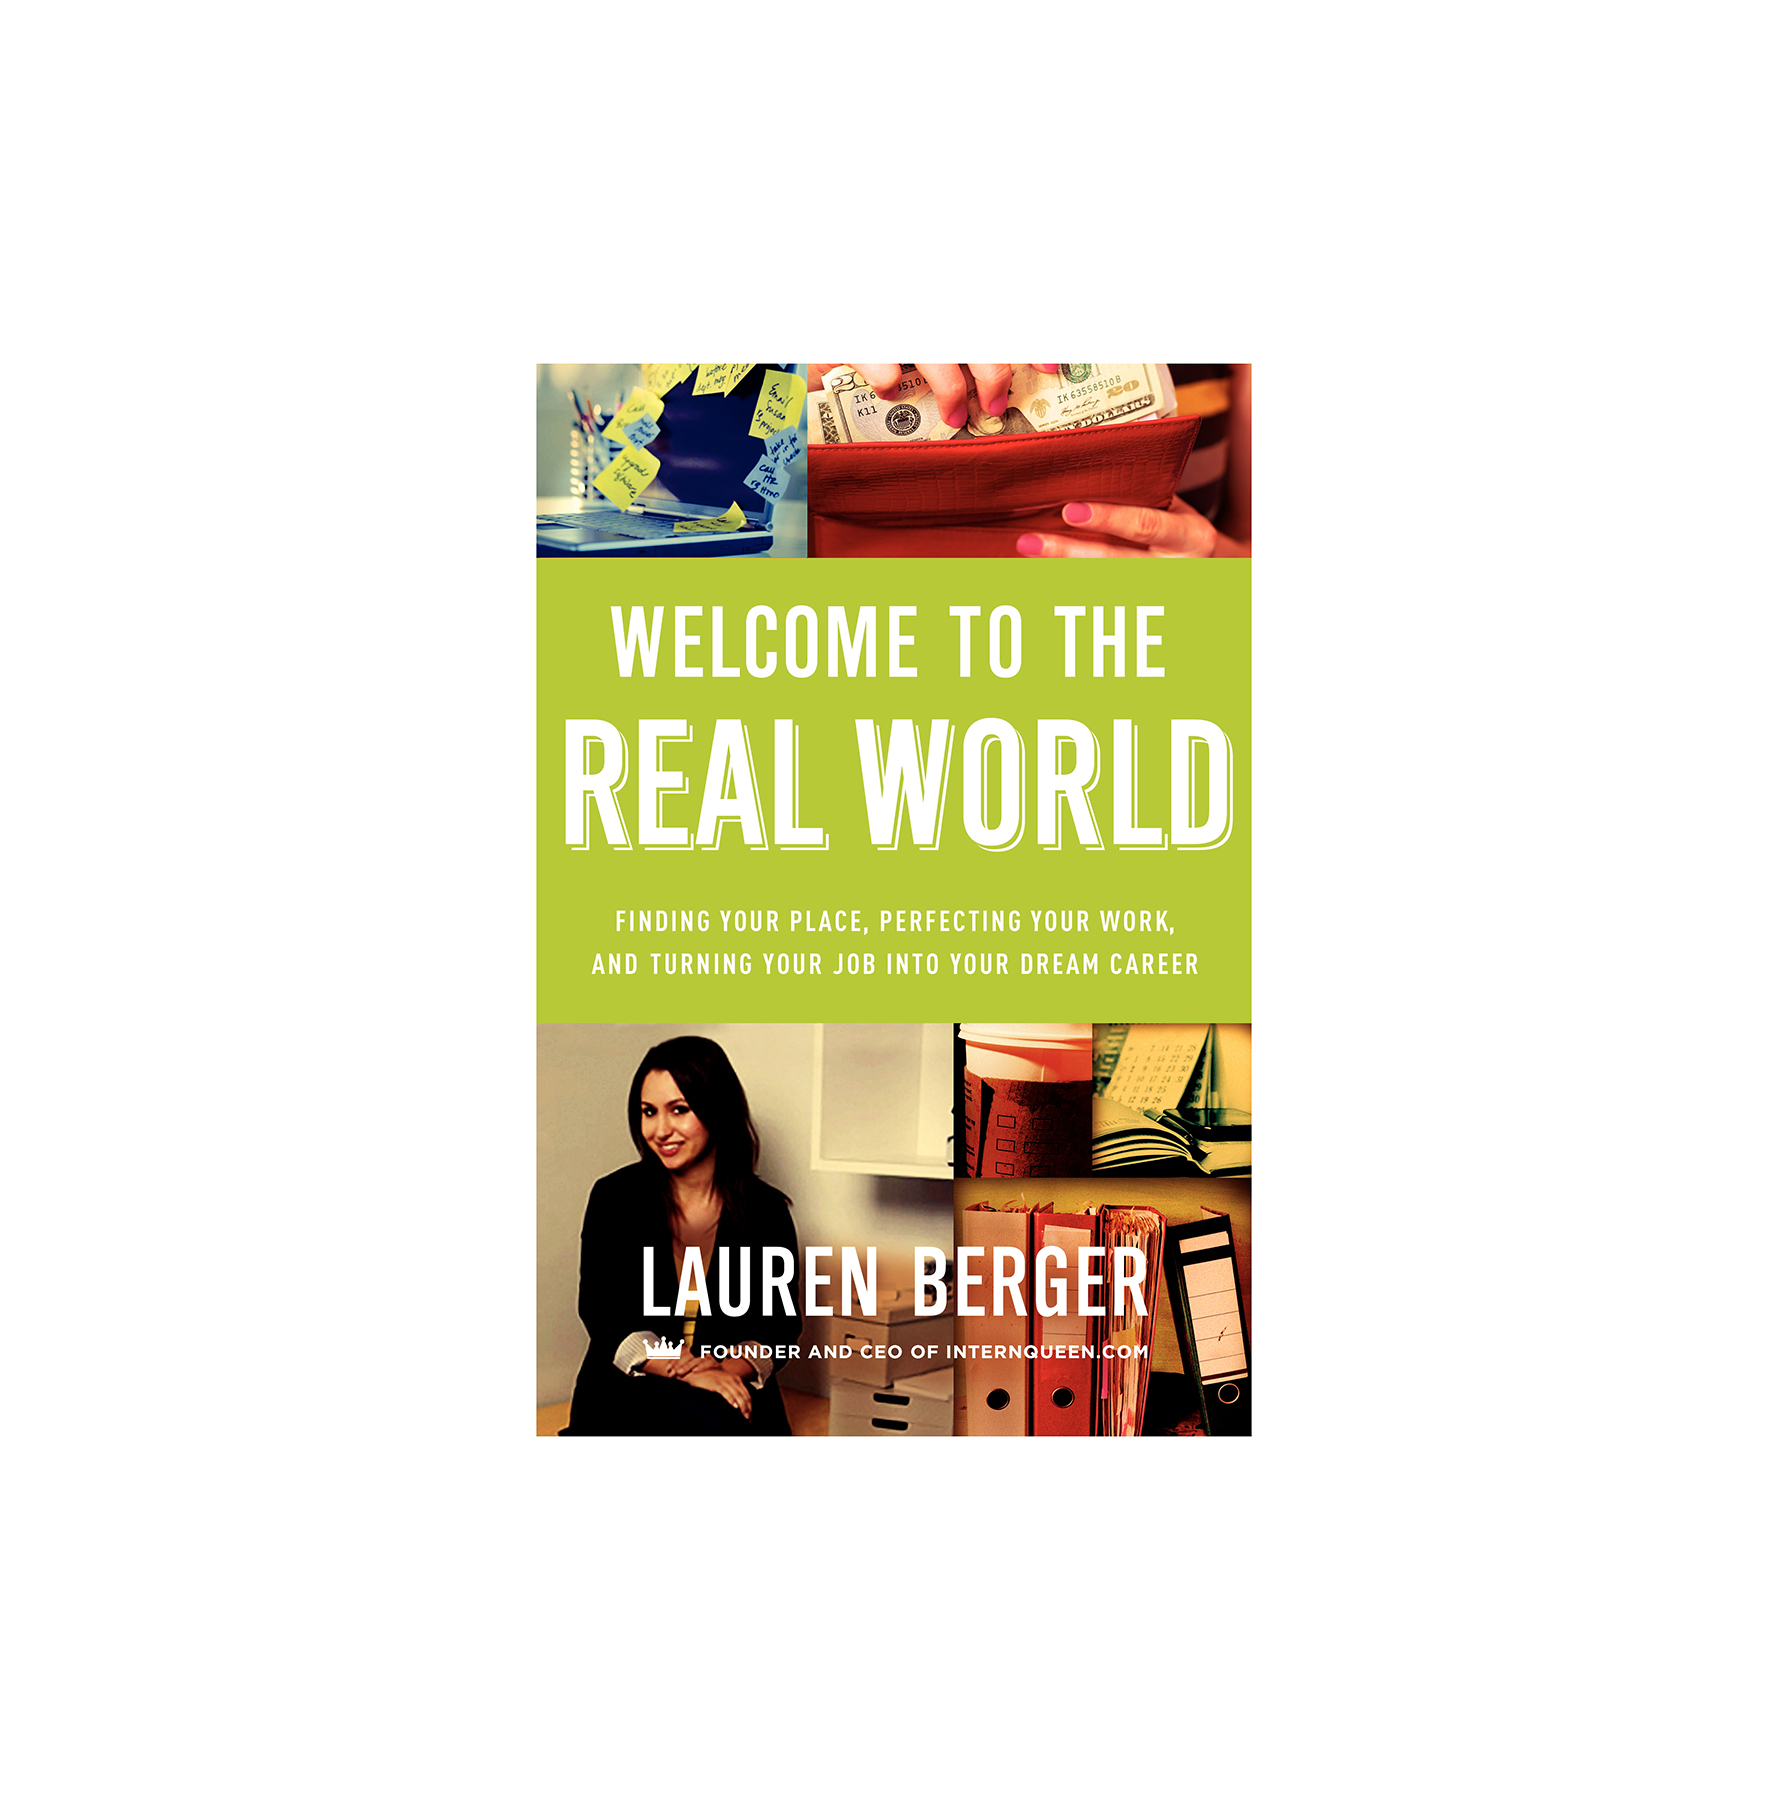 Welcome To The Real World, by Lauren Berger